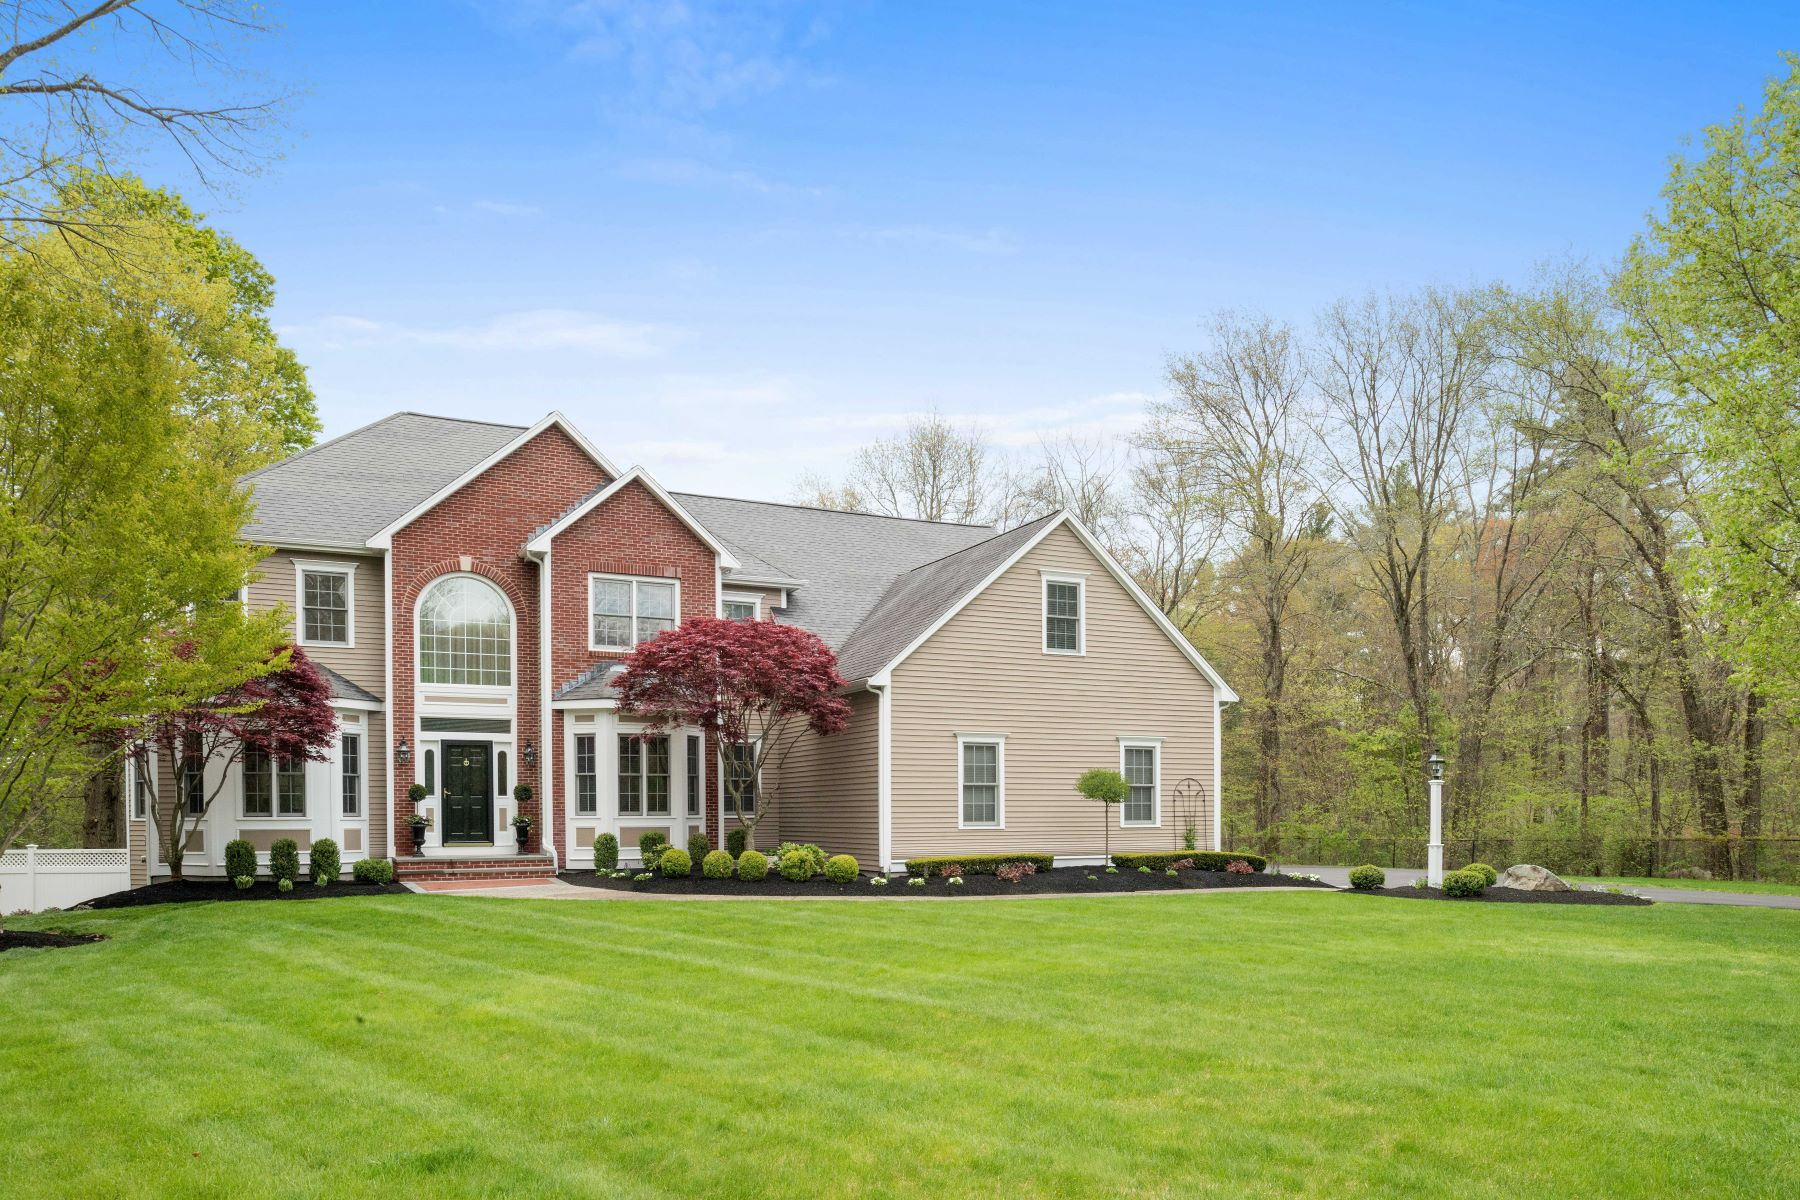 Single Family Home for Sale at 75 Wedgewood Drive, Easton Easton, Massachusetts 02356 United States